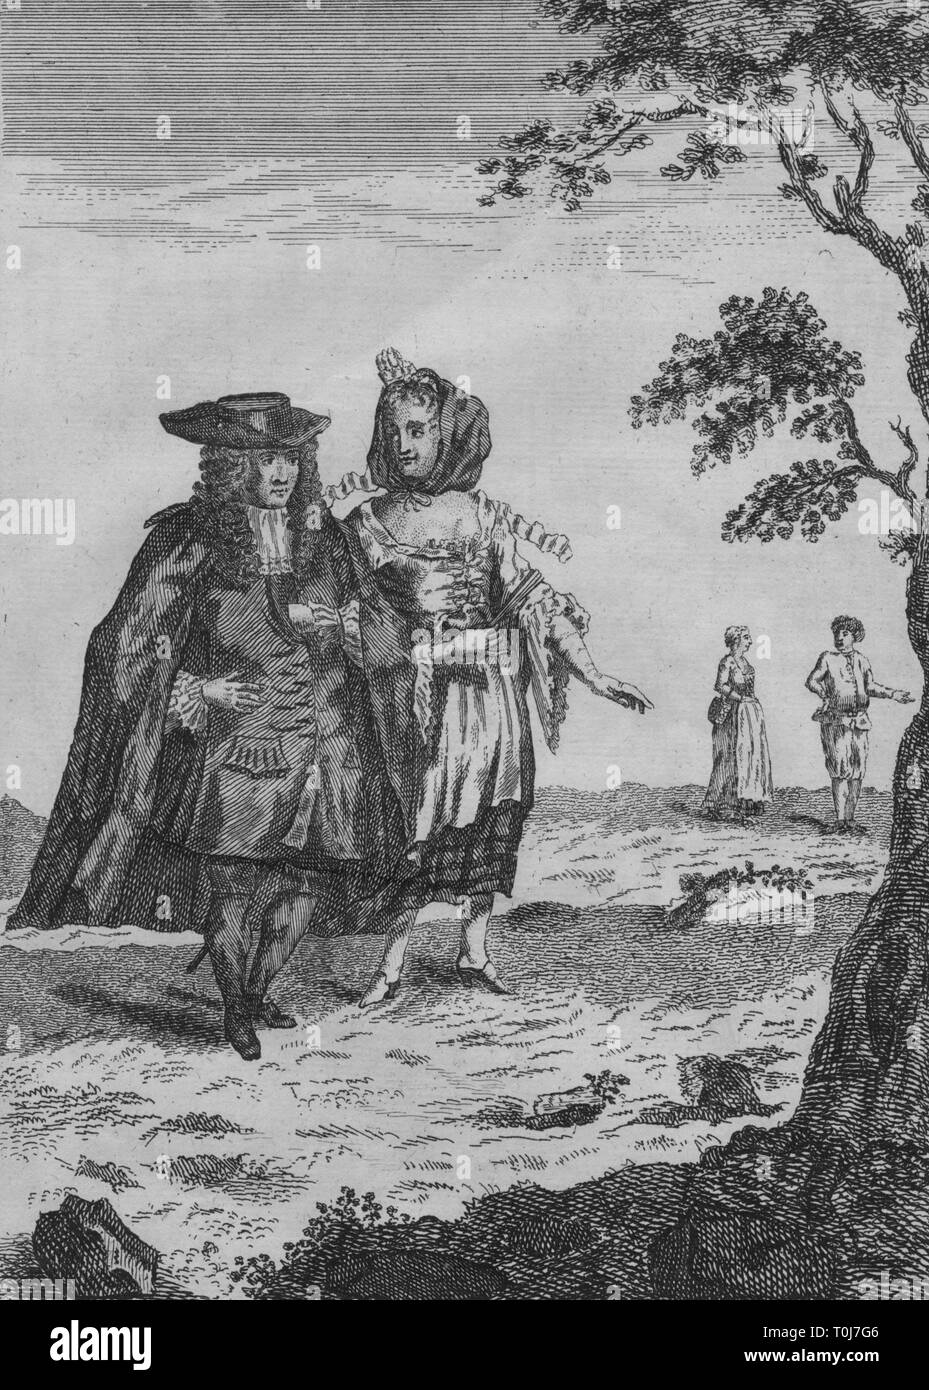 'A Burgomaster and His Wife', late 17th-early 18th century? A burgermeister, (or burgomaster, chief magistrate or executive of a city or town), wearing a frock coat, cloak and hat. His wife wears a low-cut dress and a snood over her hair. - Stock Image